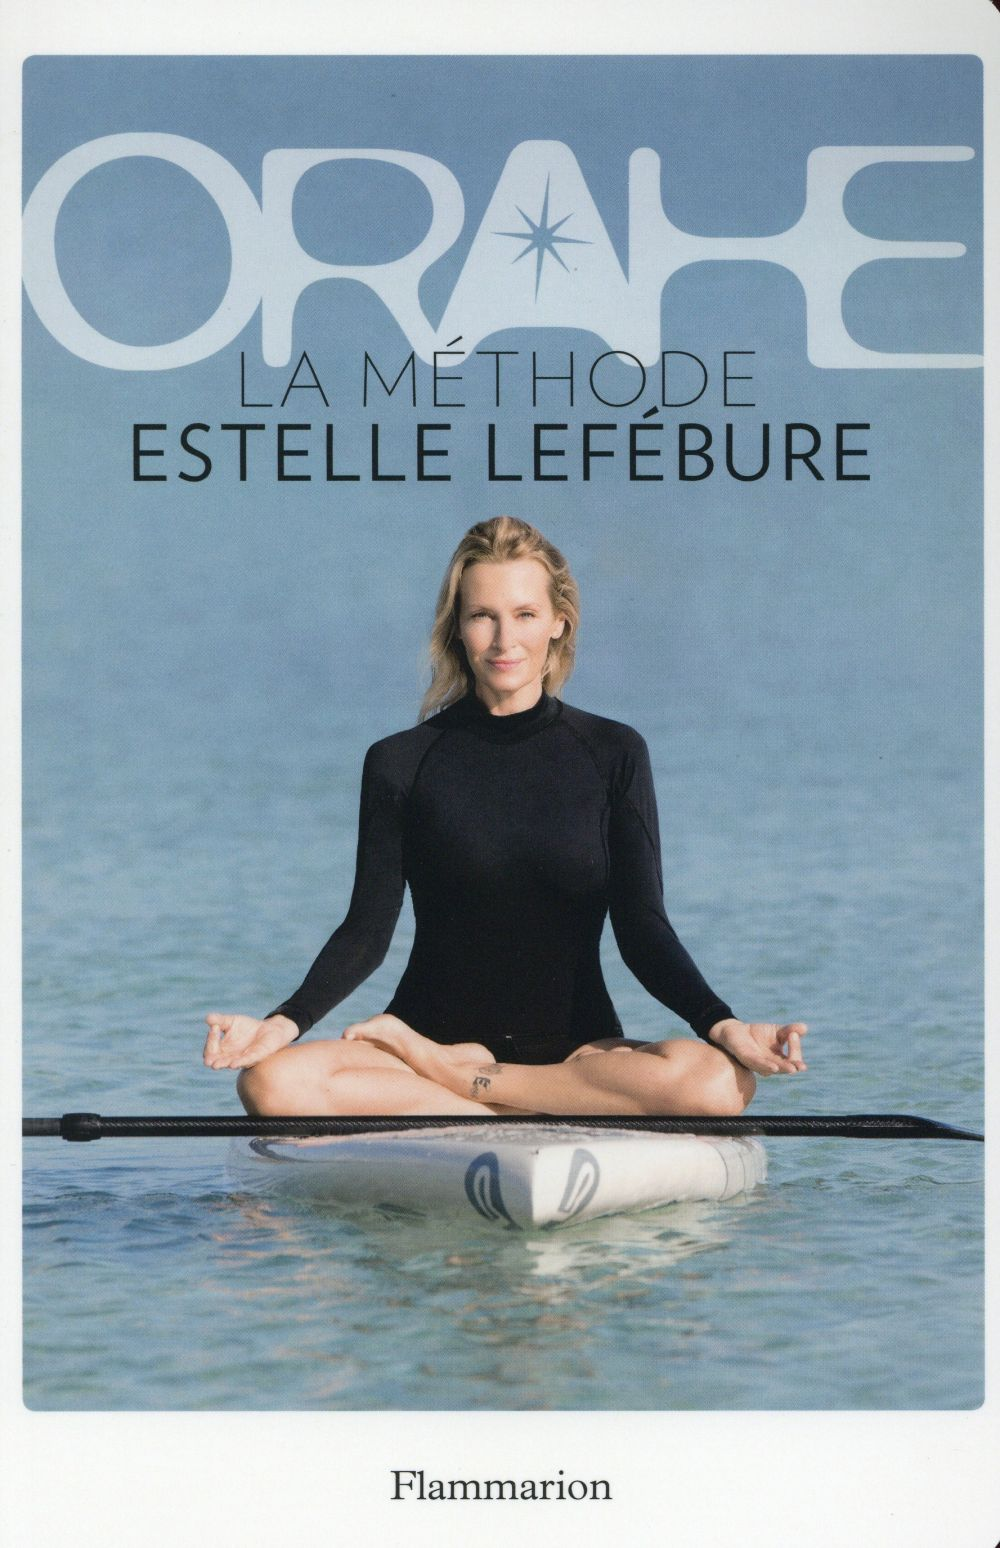 ORAHE LA METHODE ESTELLE LEFEBURE